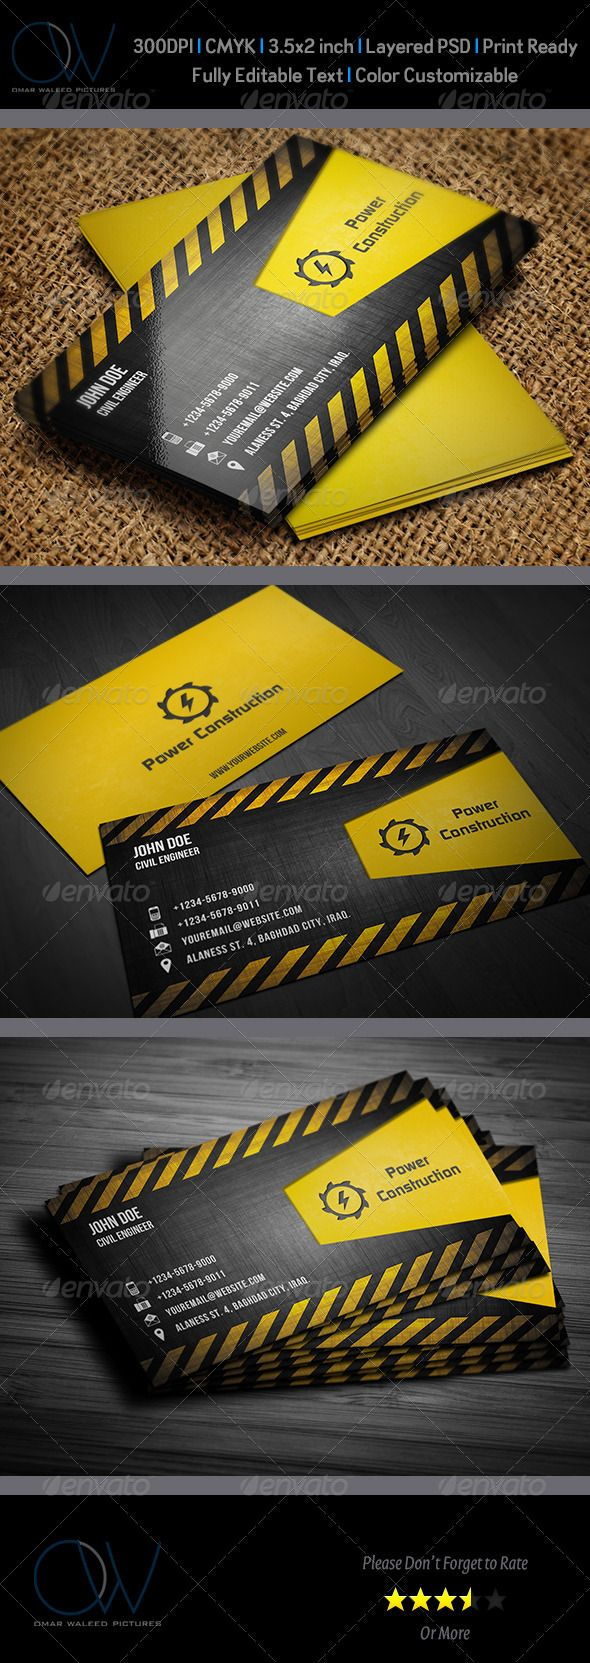 Construction Business Card | Construction business cards ...